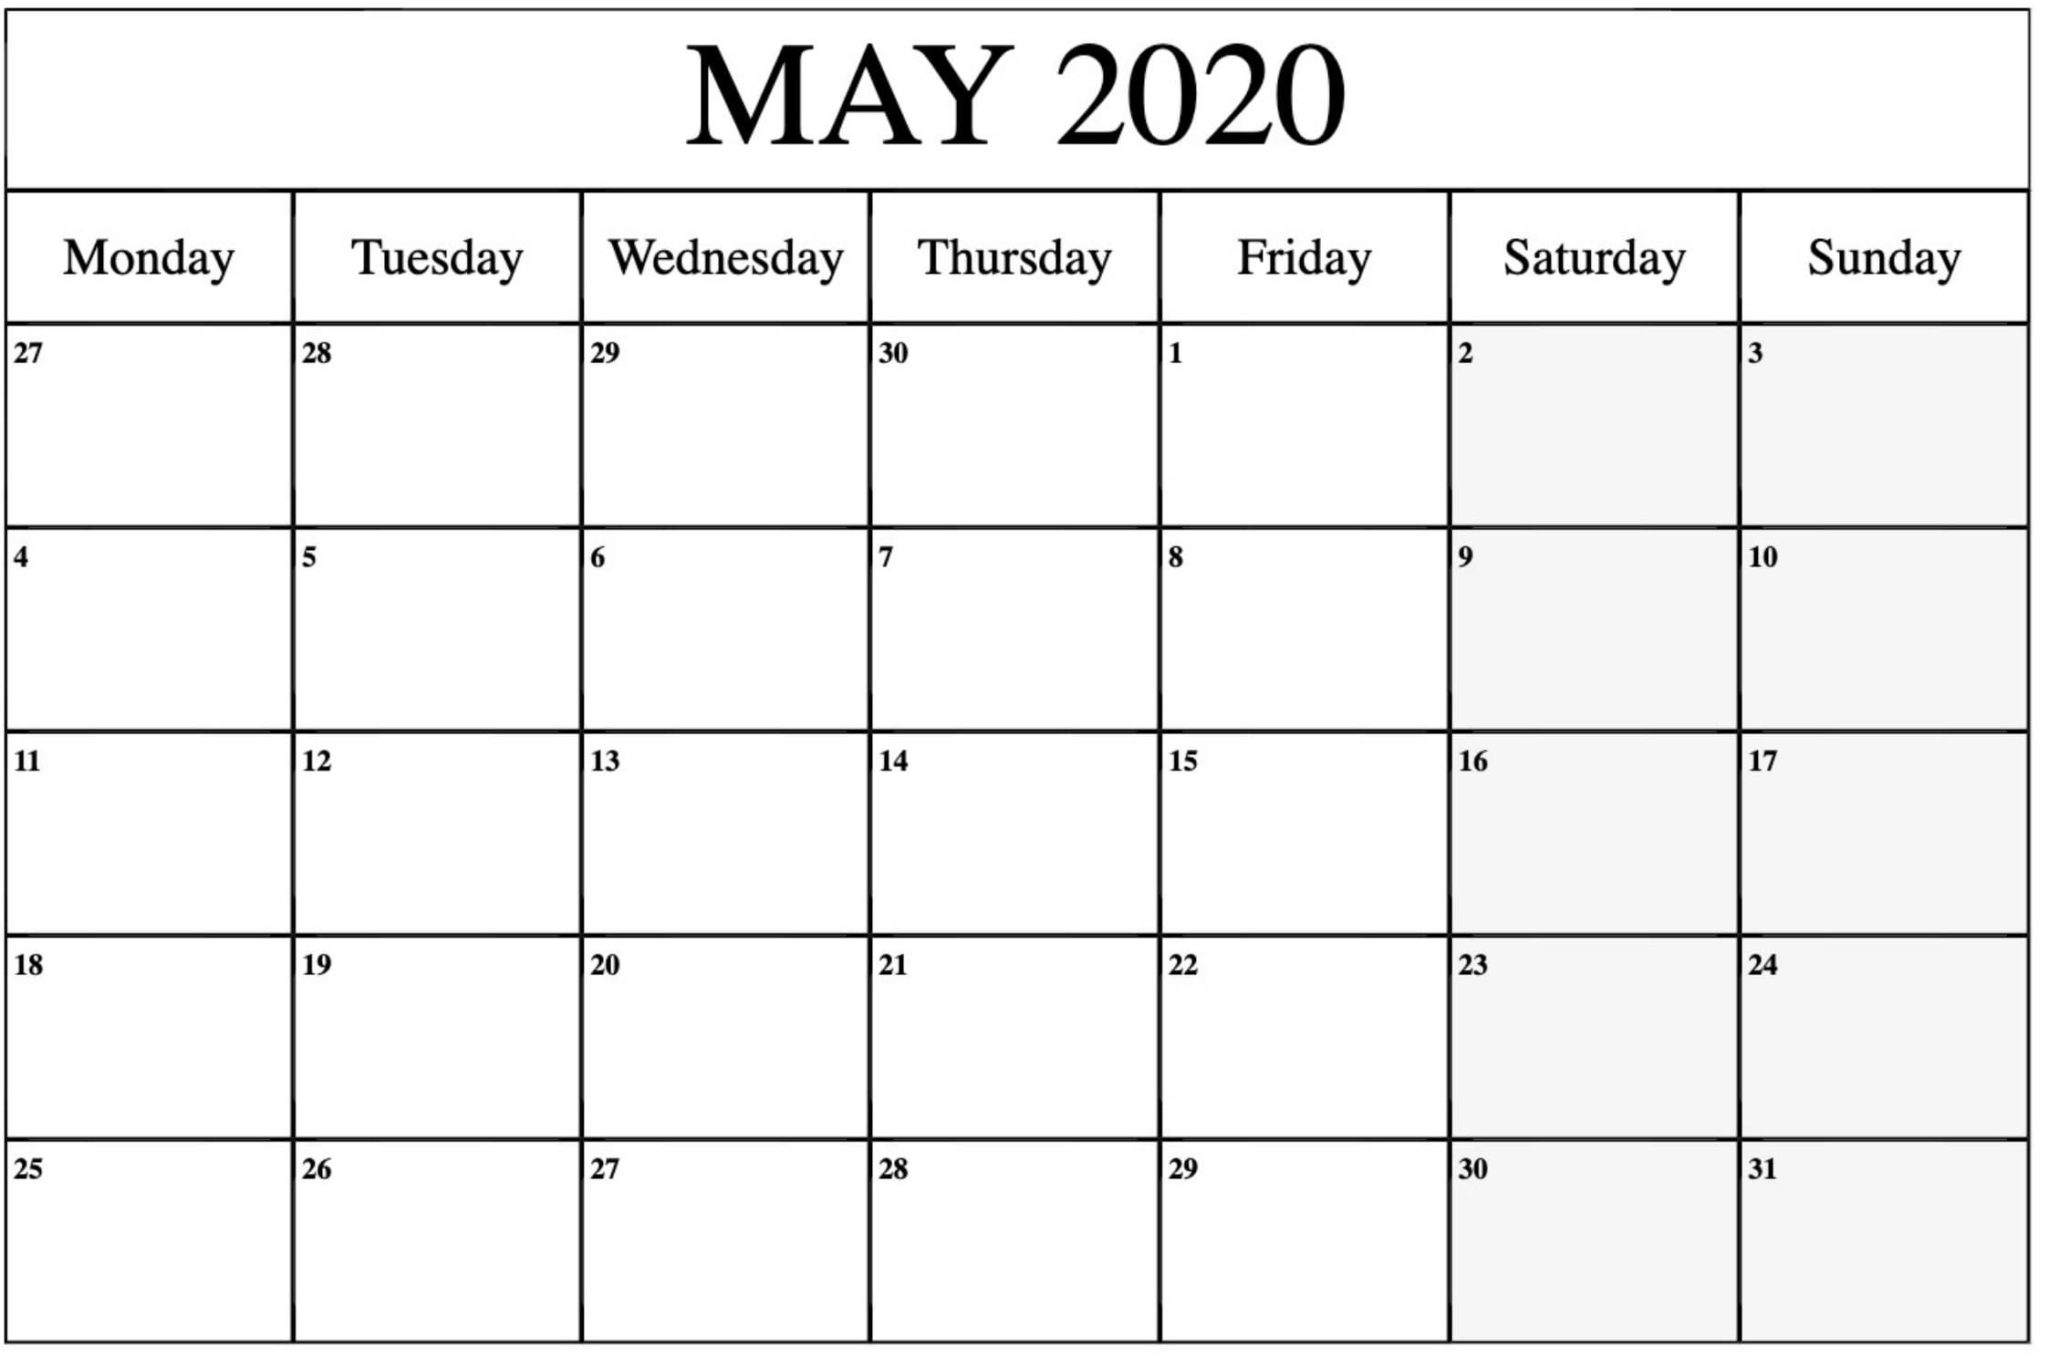 Monthly Calendar Template May 2020